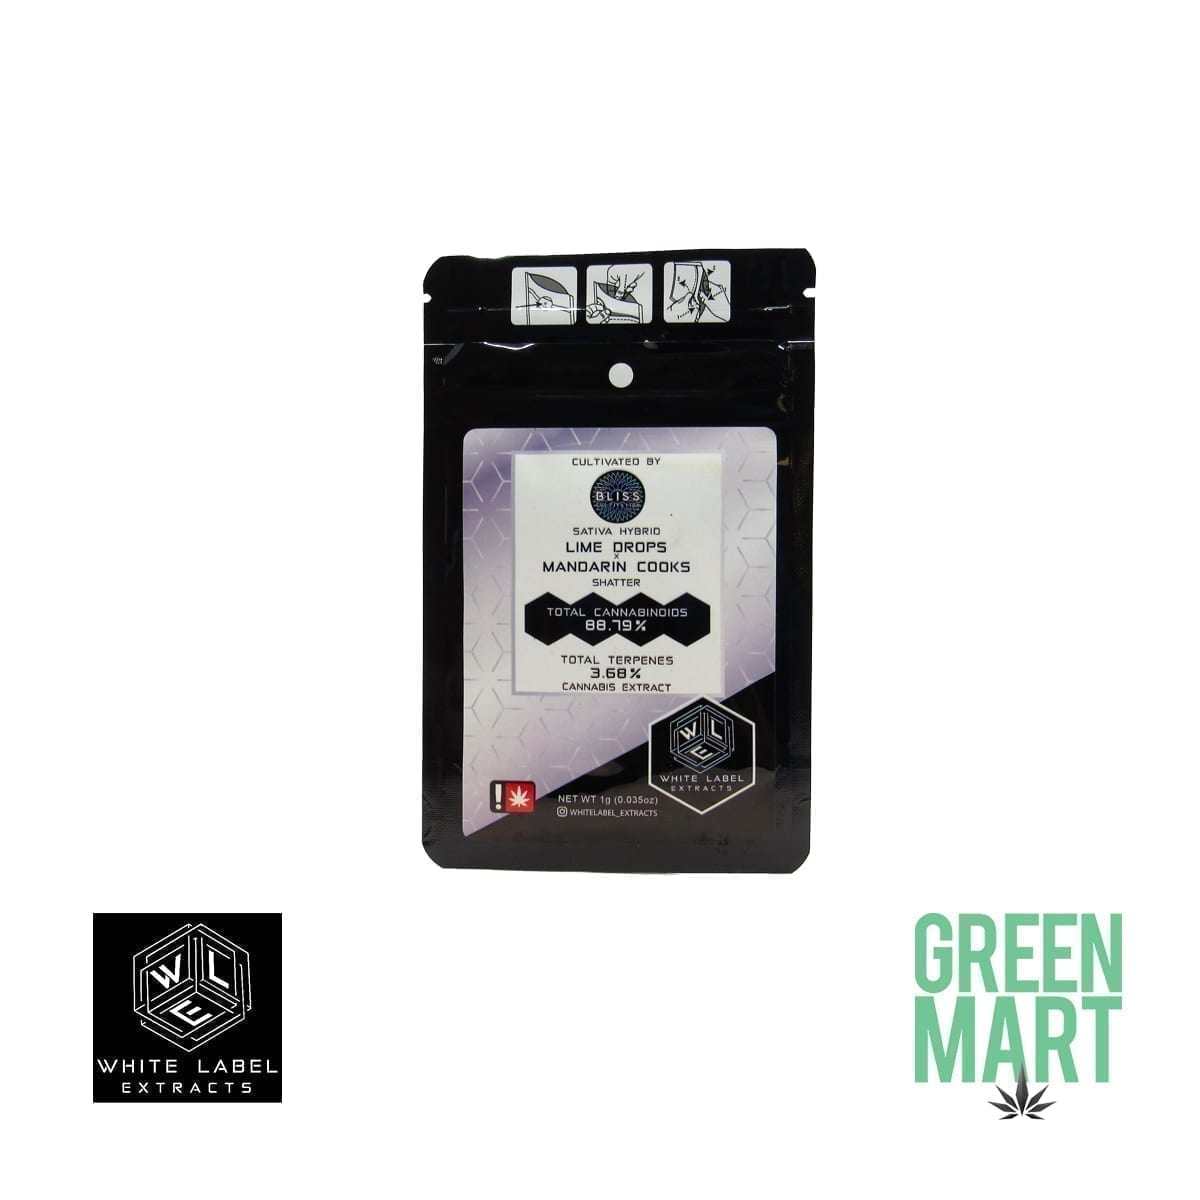 White Label Extracts - Lime Drops X Mandarin Cooks Shatter